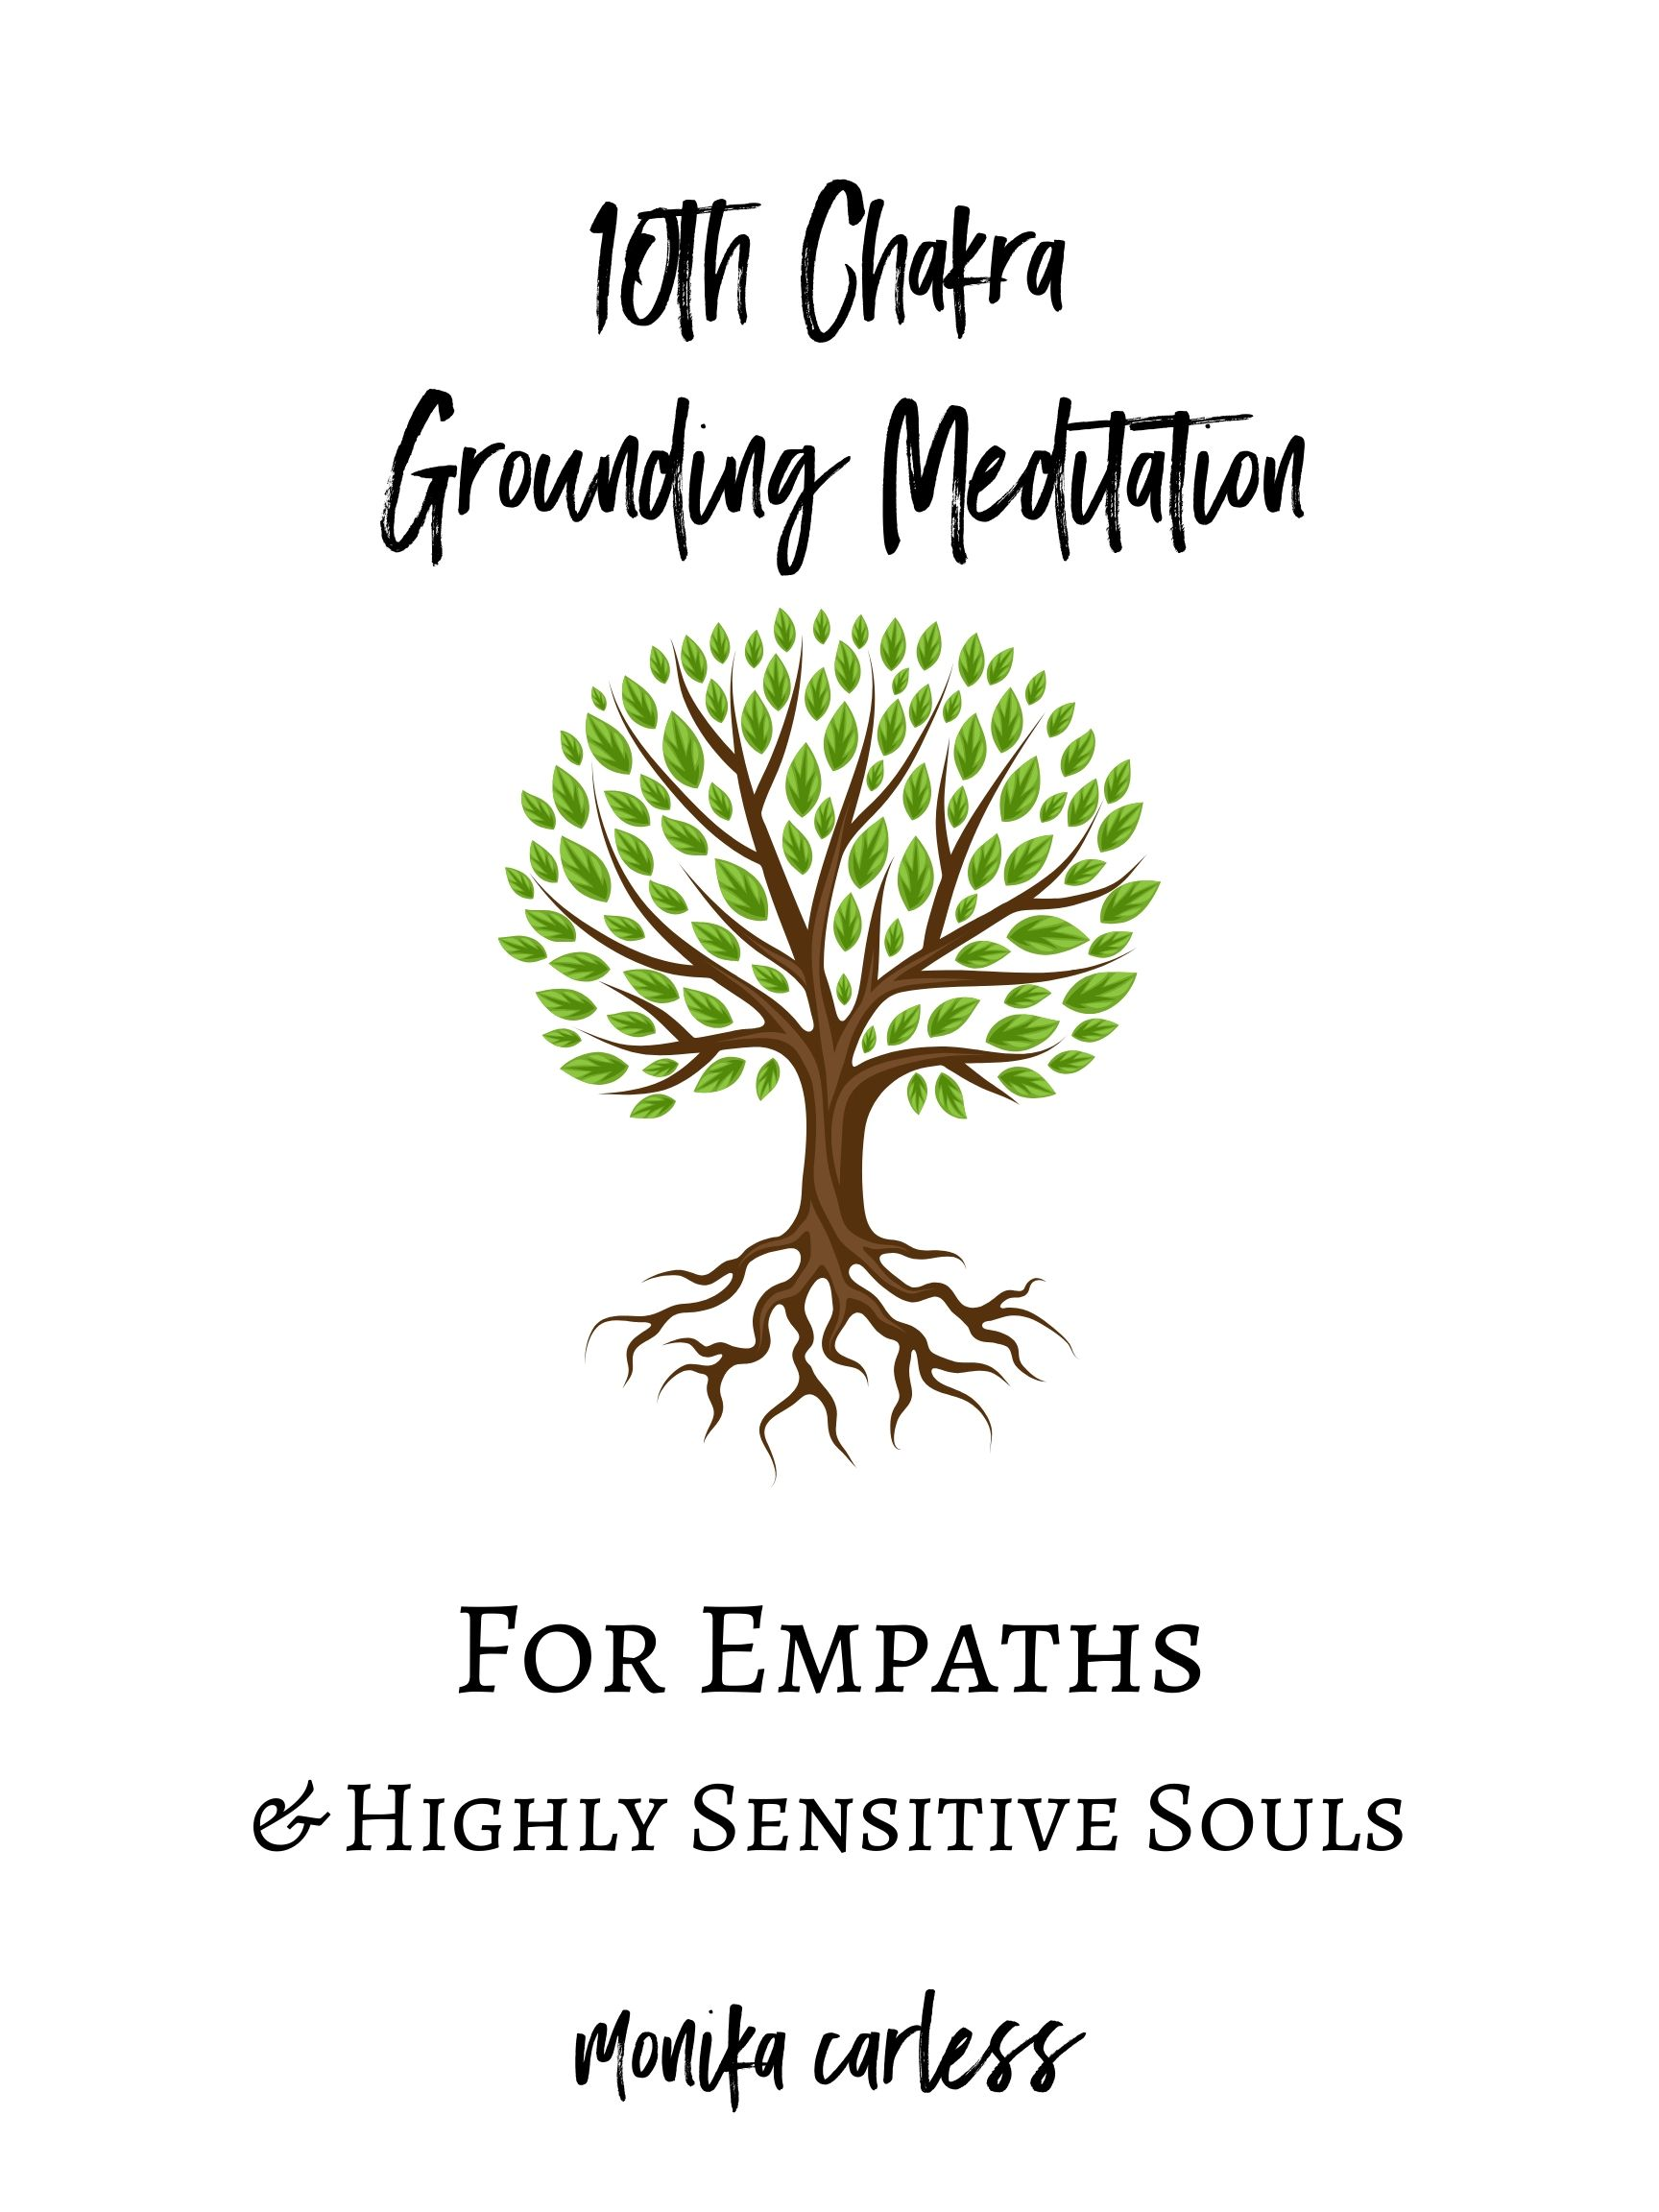 10th Chakra Grounding Meditation – For Empaths And Highly Sensitive People